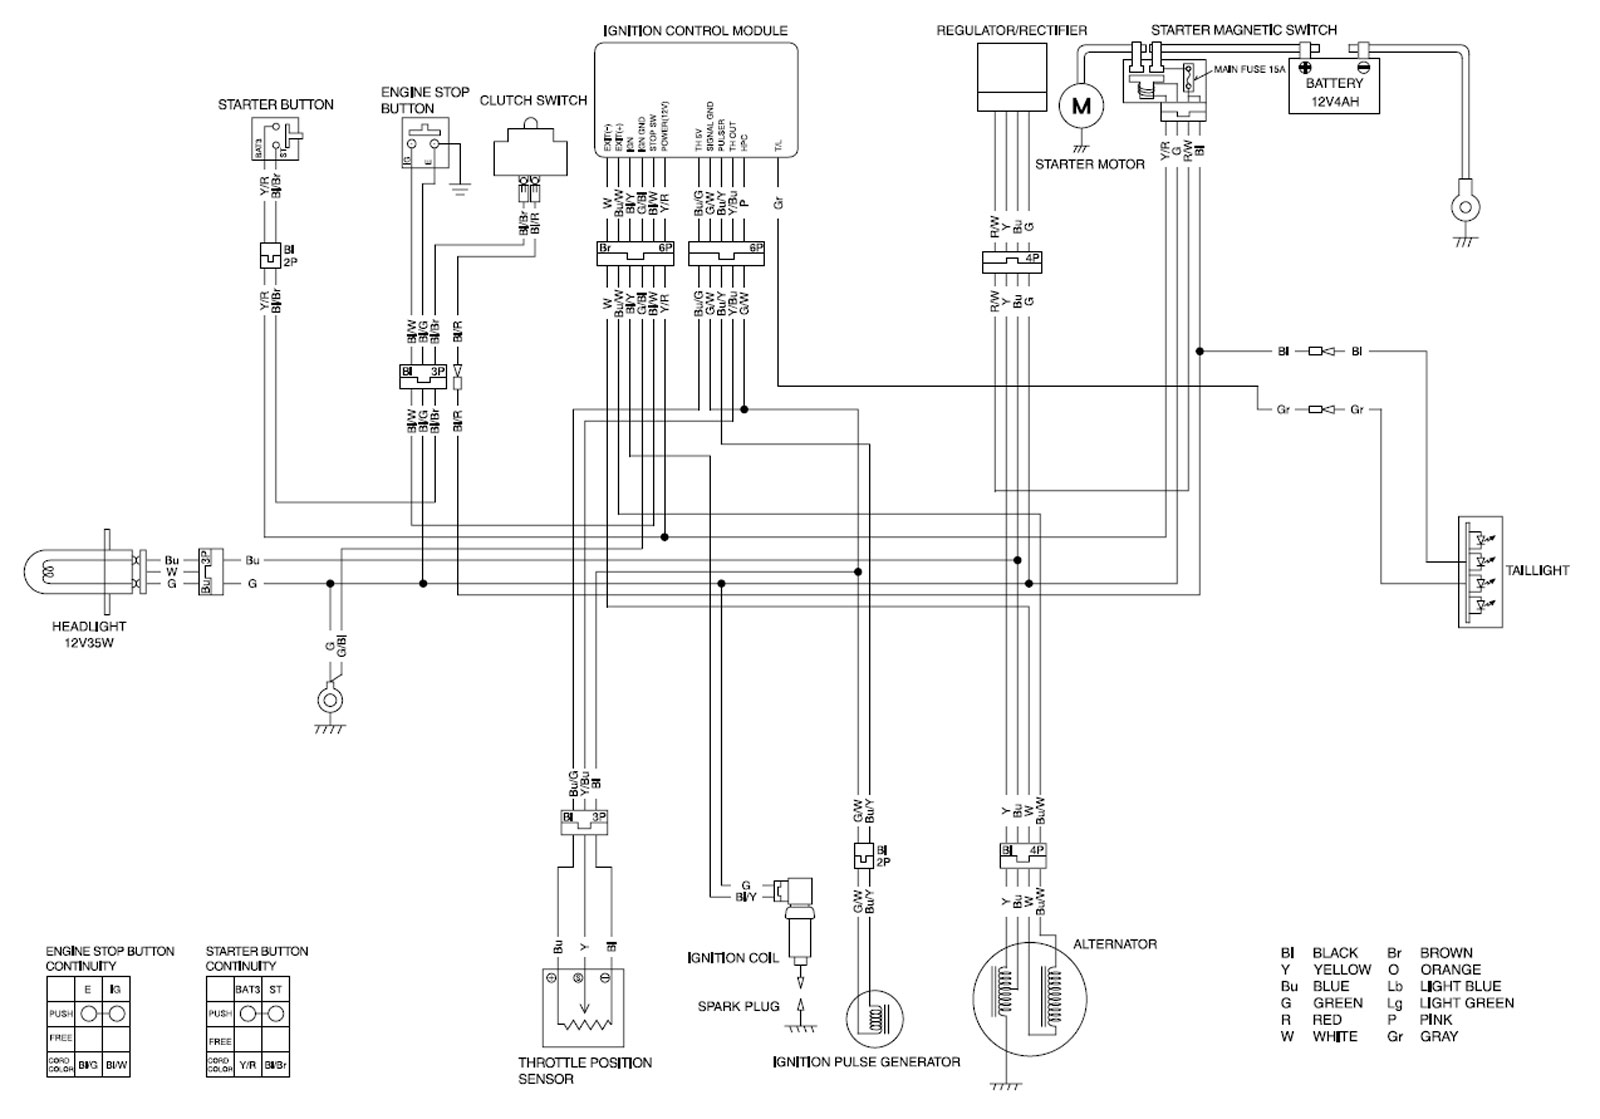 hight resolution of cb1100 wiring diagram wiring diagram schematics crf250x wiring diagram cb1100 wiring diagram